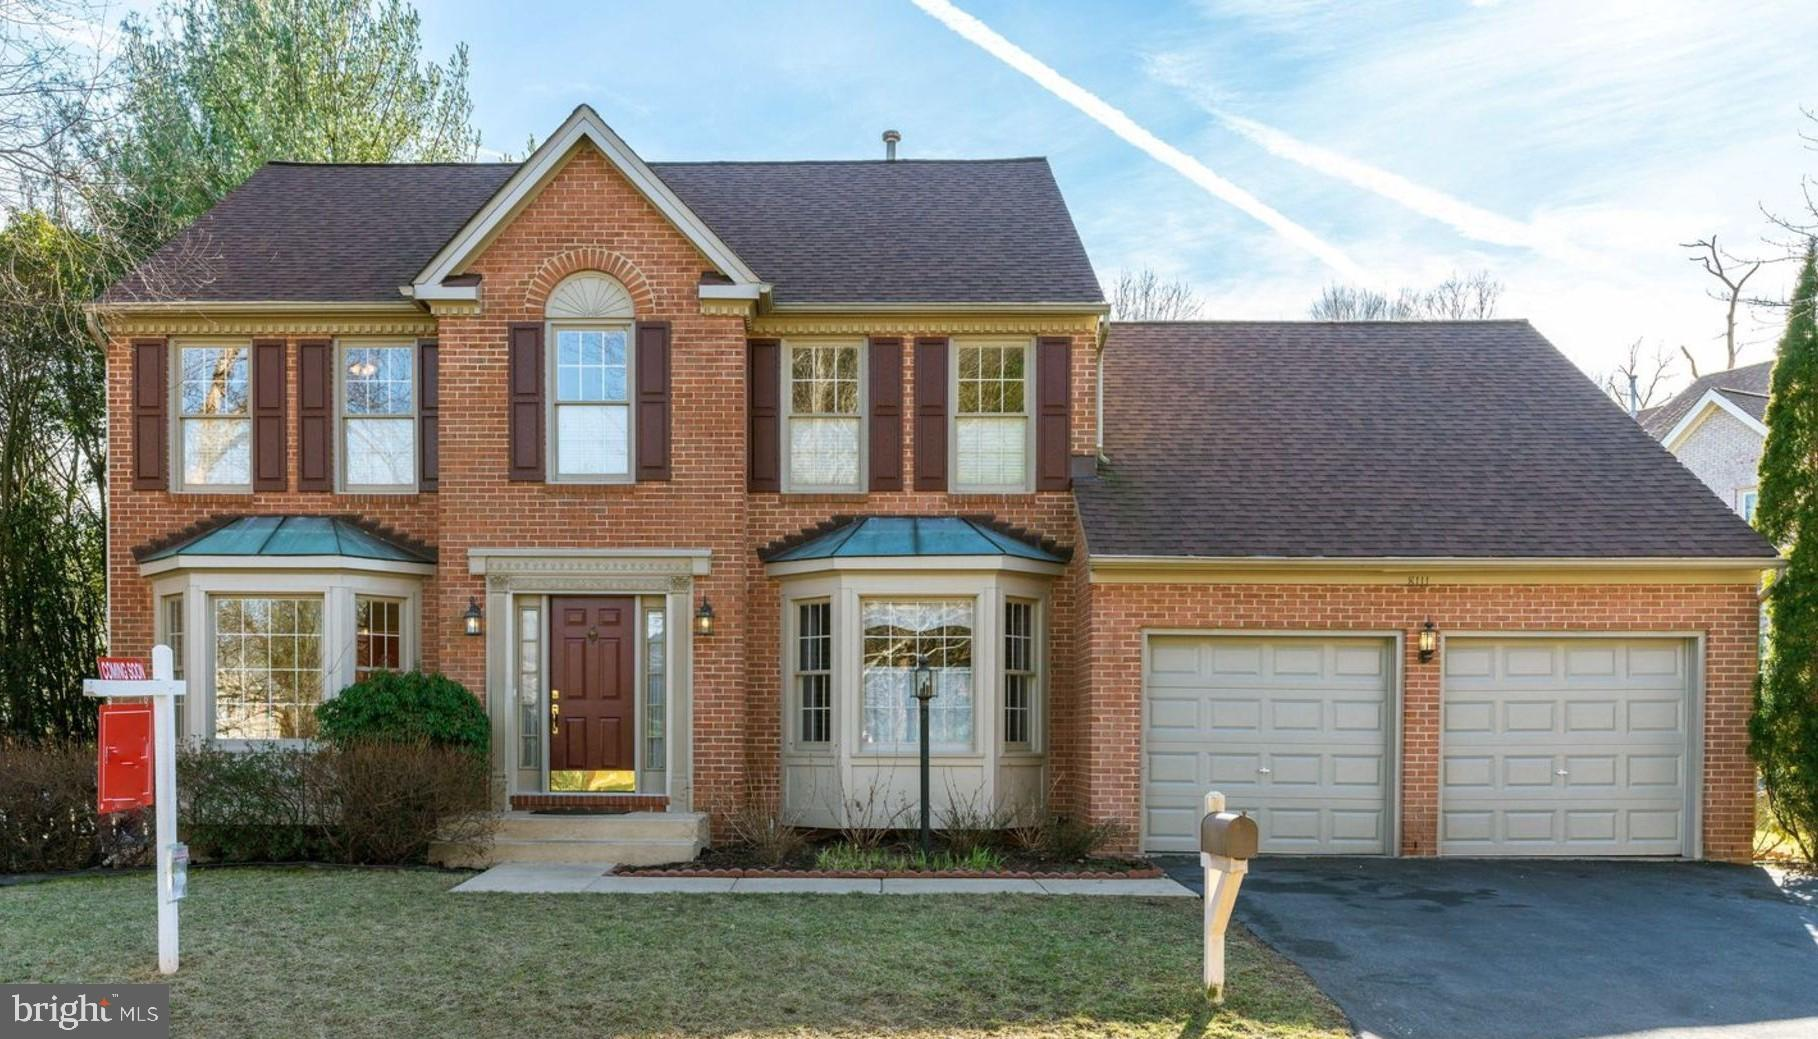 8111 RIDGE CREEK WAY, SPRINGFIELD, VA 22153